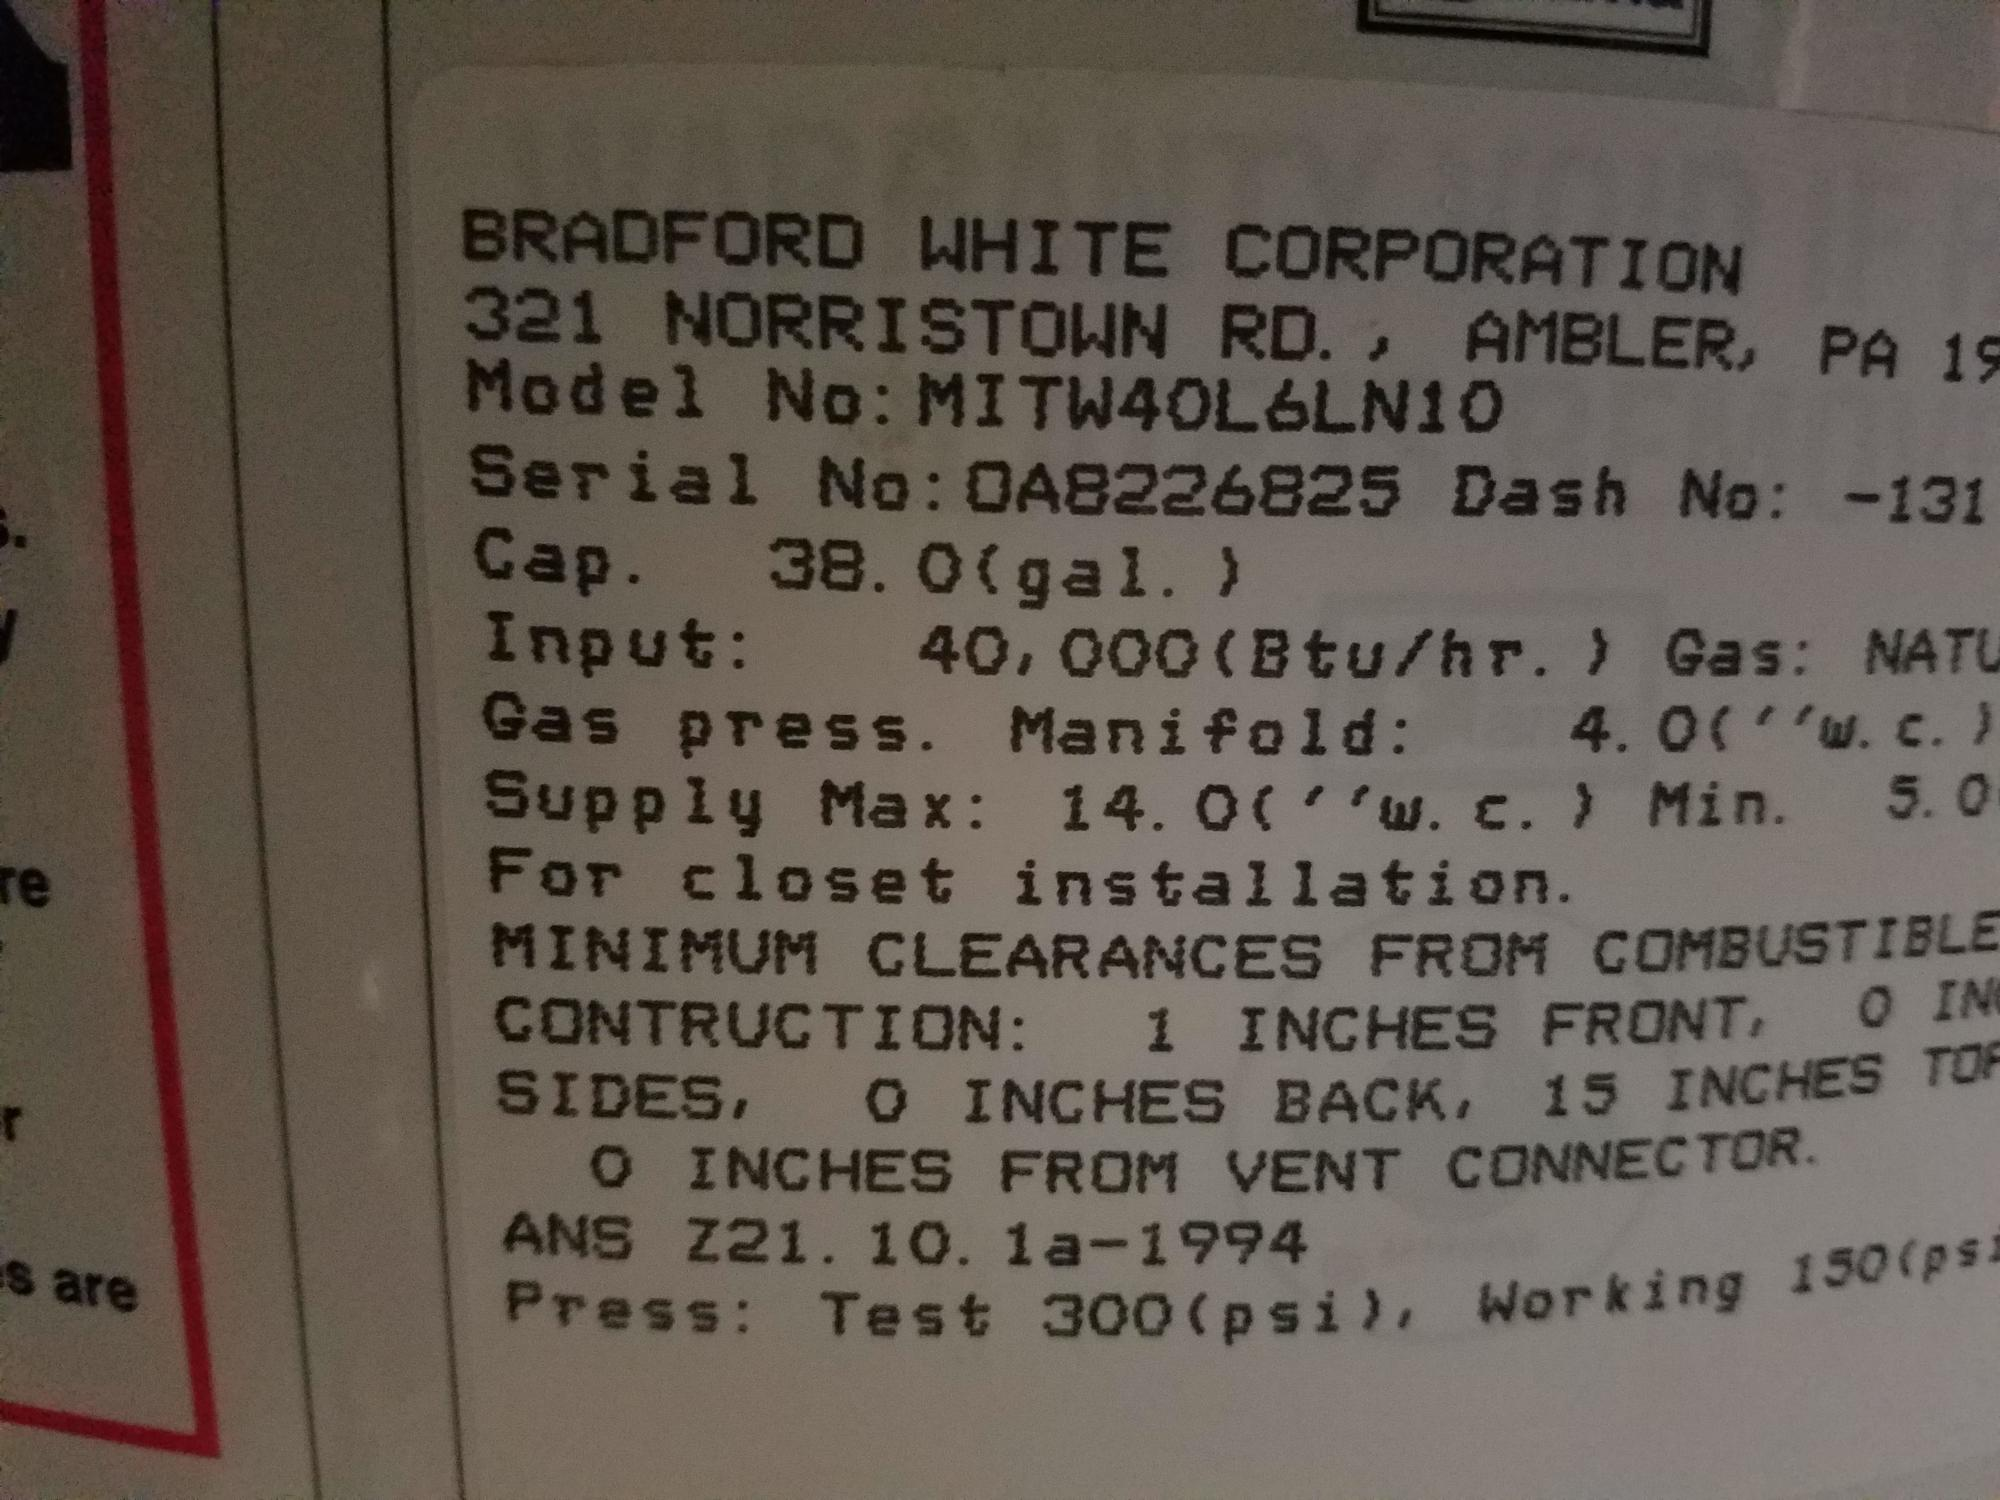 bradford white serial numbers Bradford White Water Heater age | Building Intelligence Center